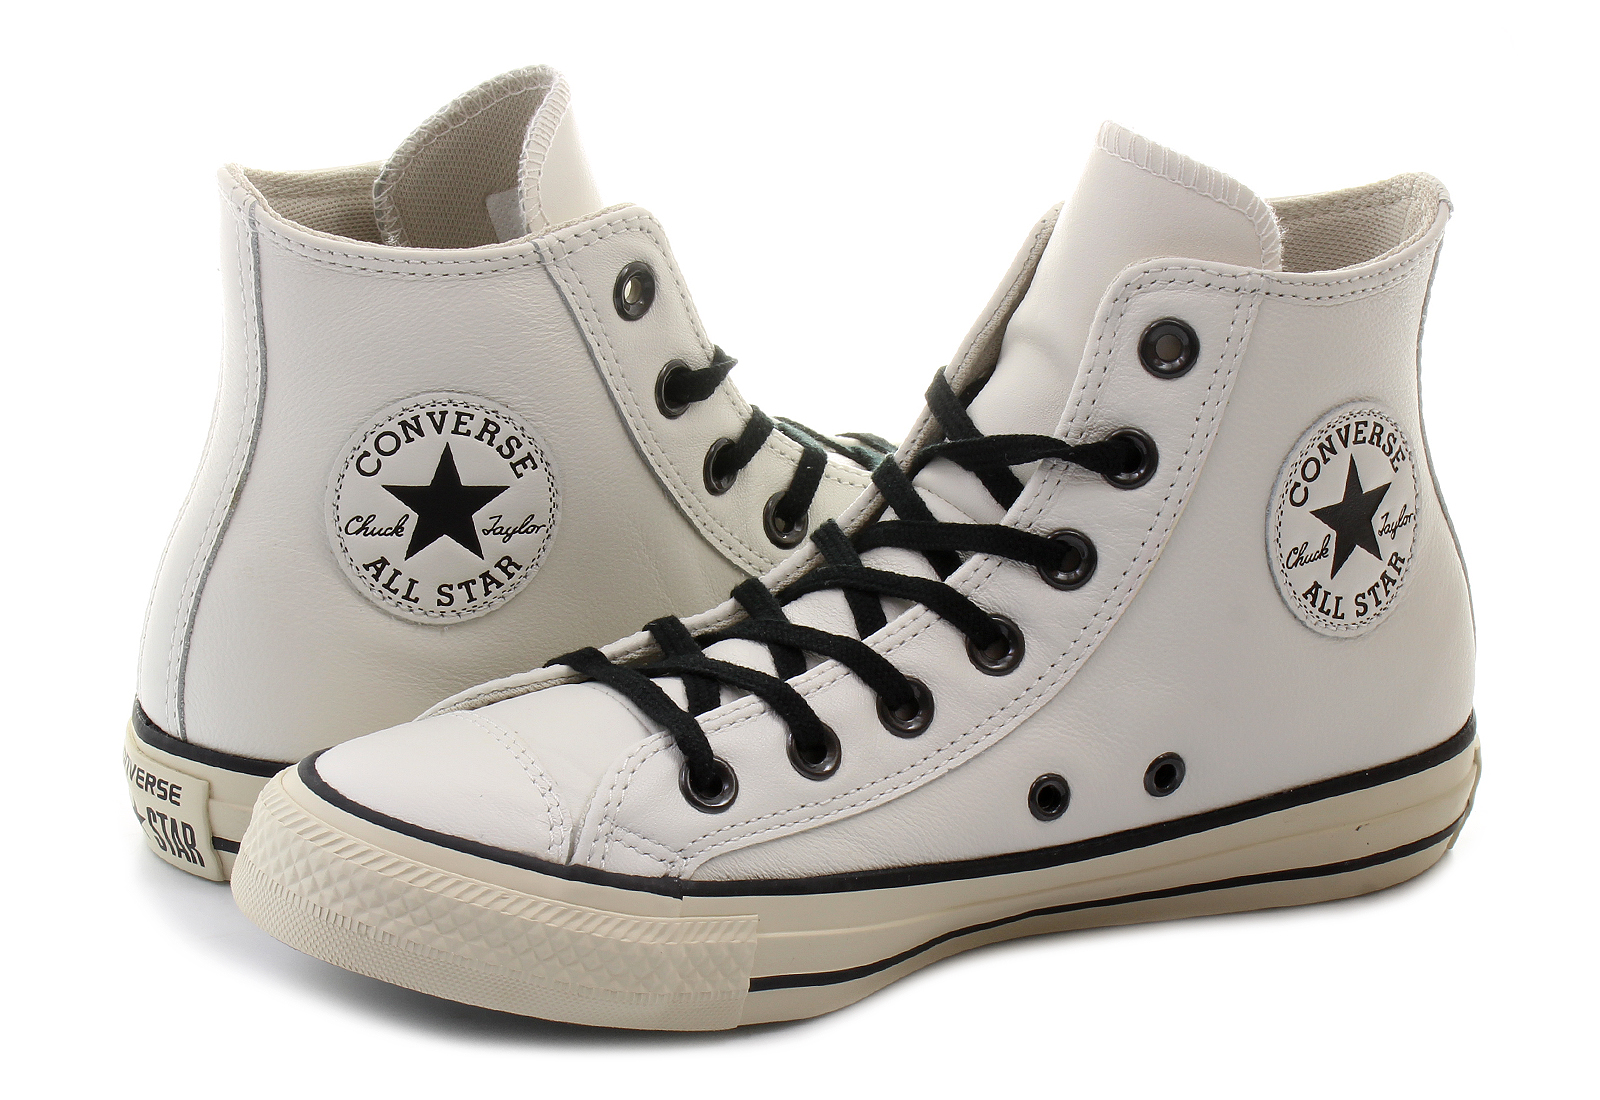 CONVERSE SNEAKERS CT AS LEATHER STARS 158912C